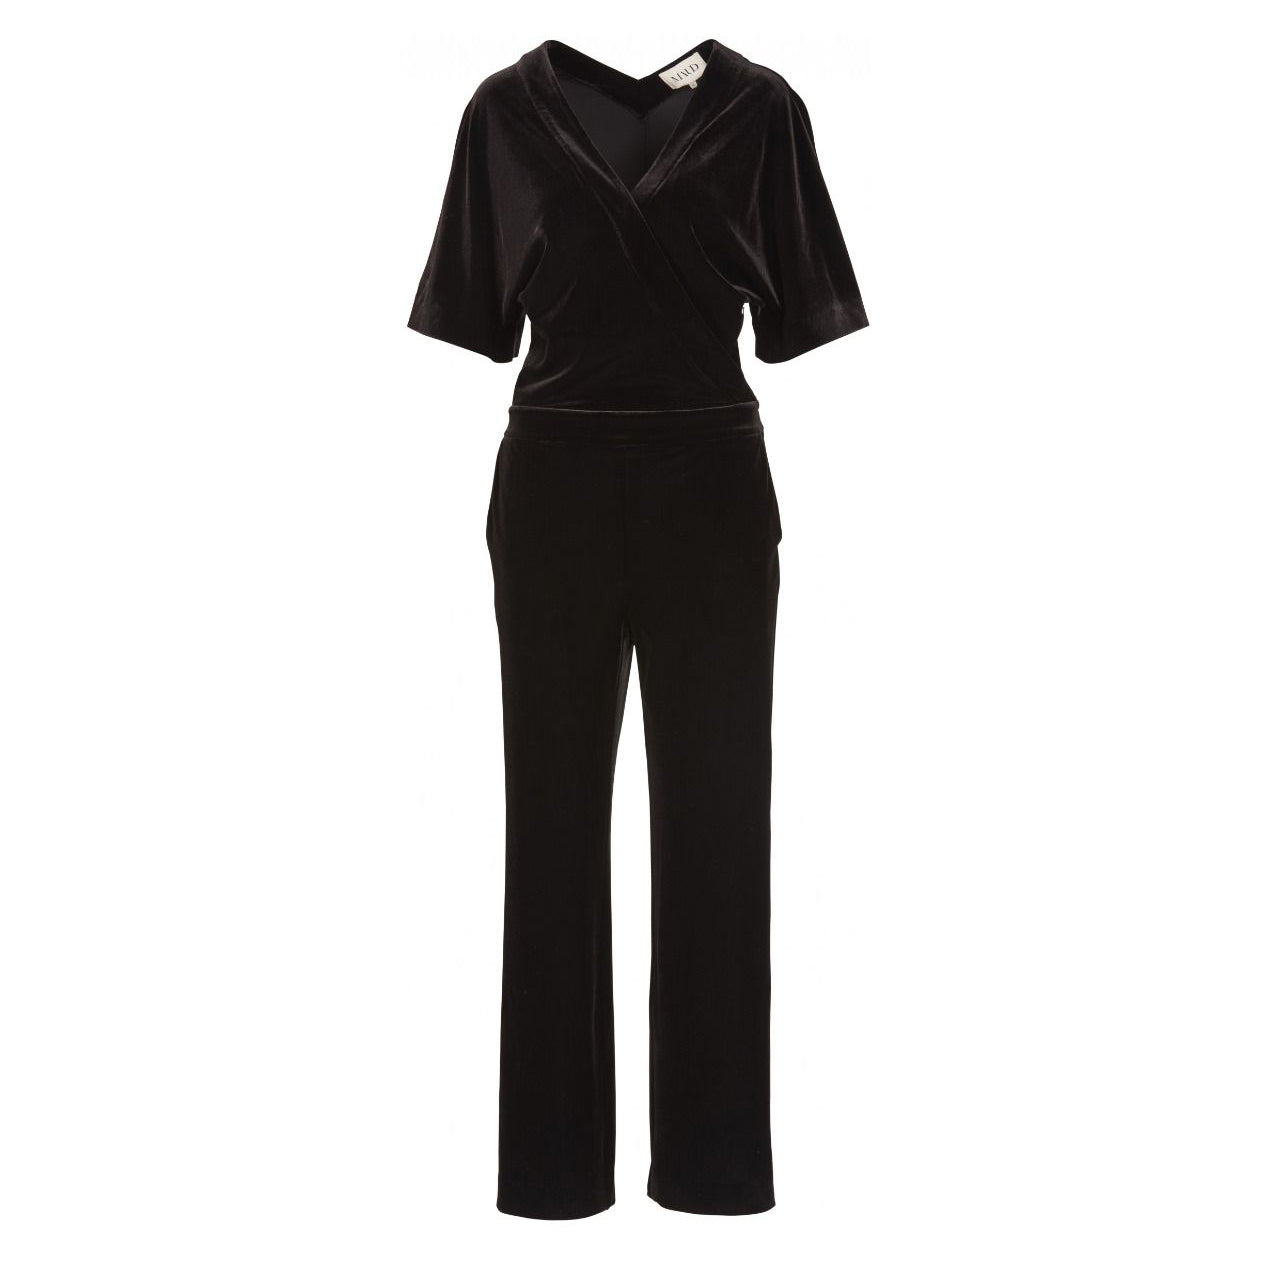 Maud Joanna - Sort jumpsuit